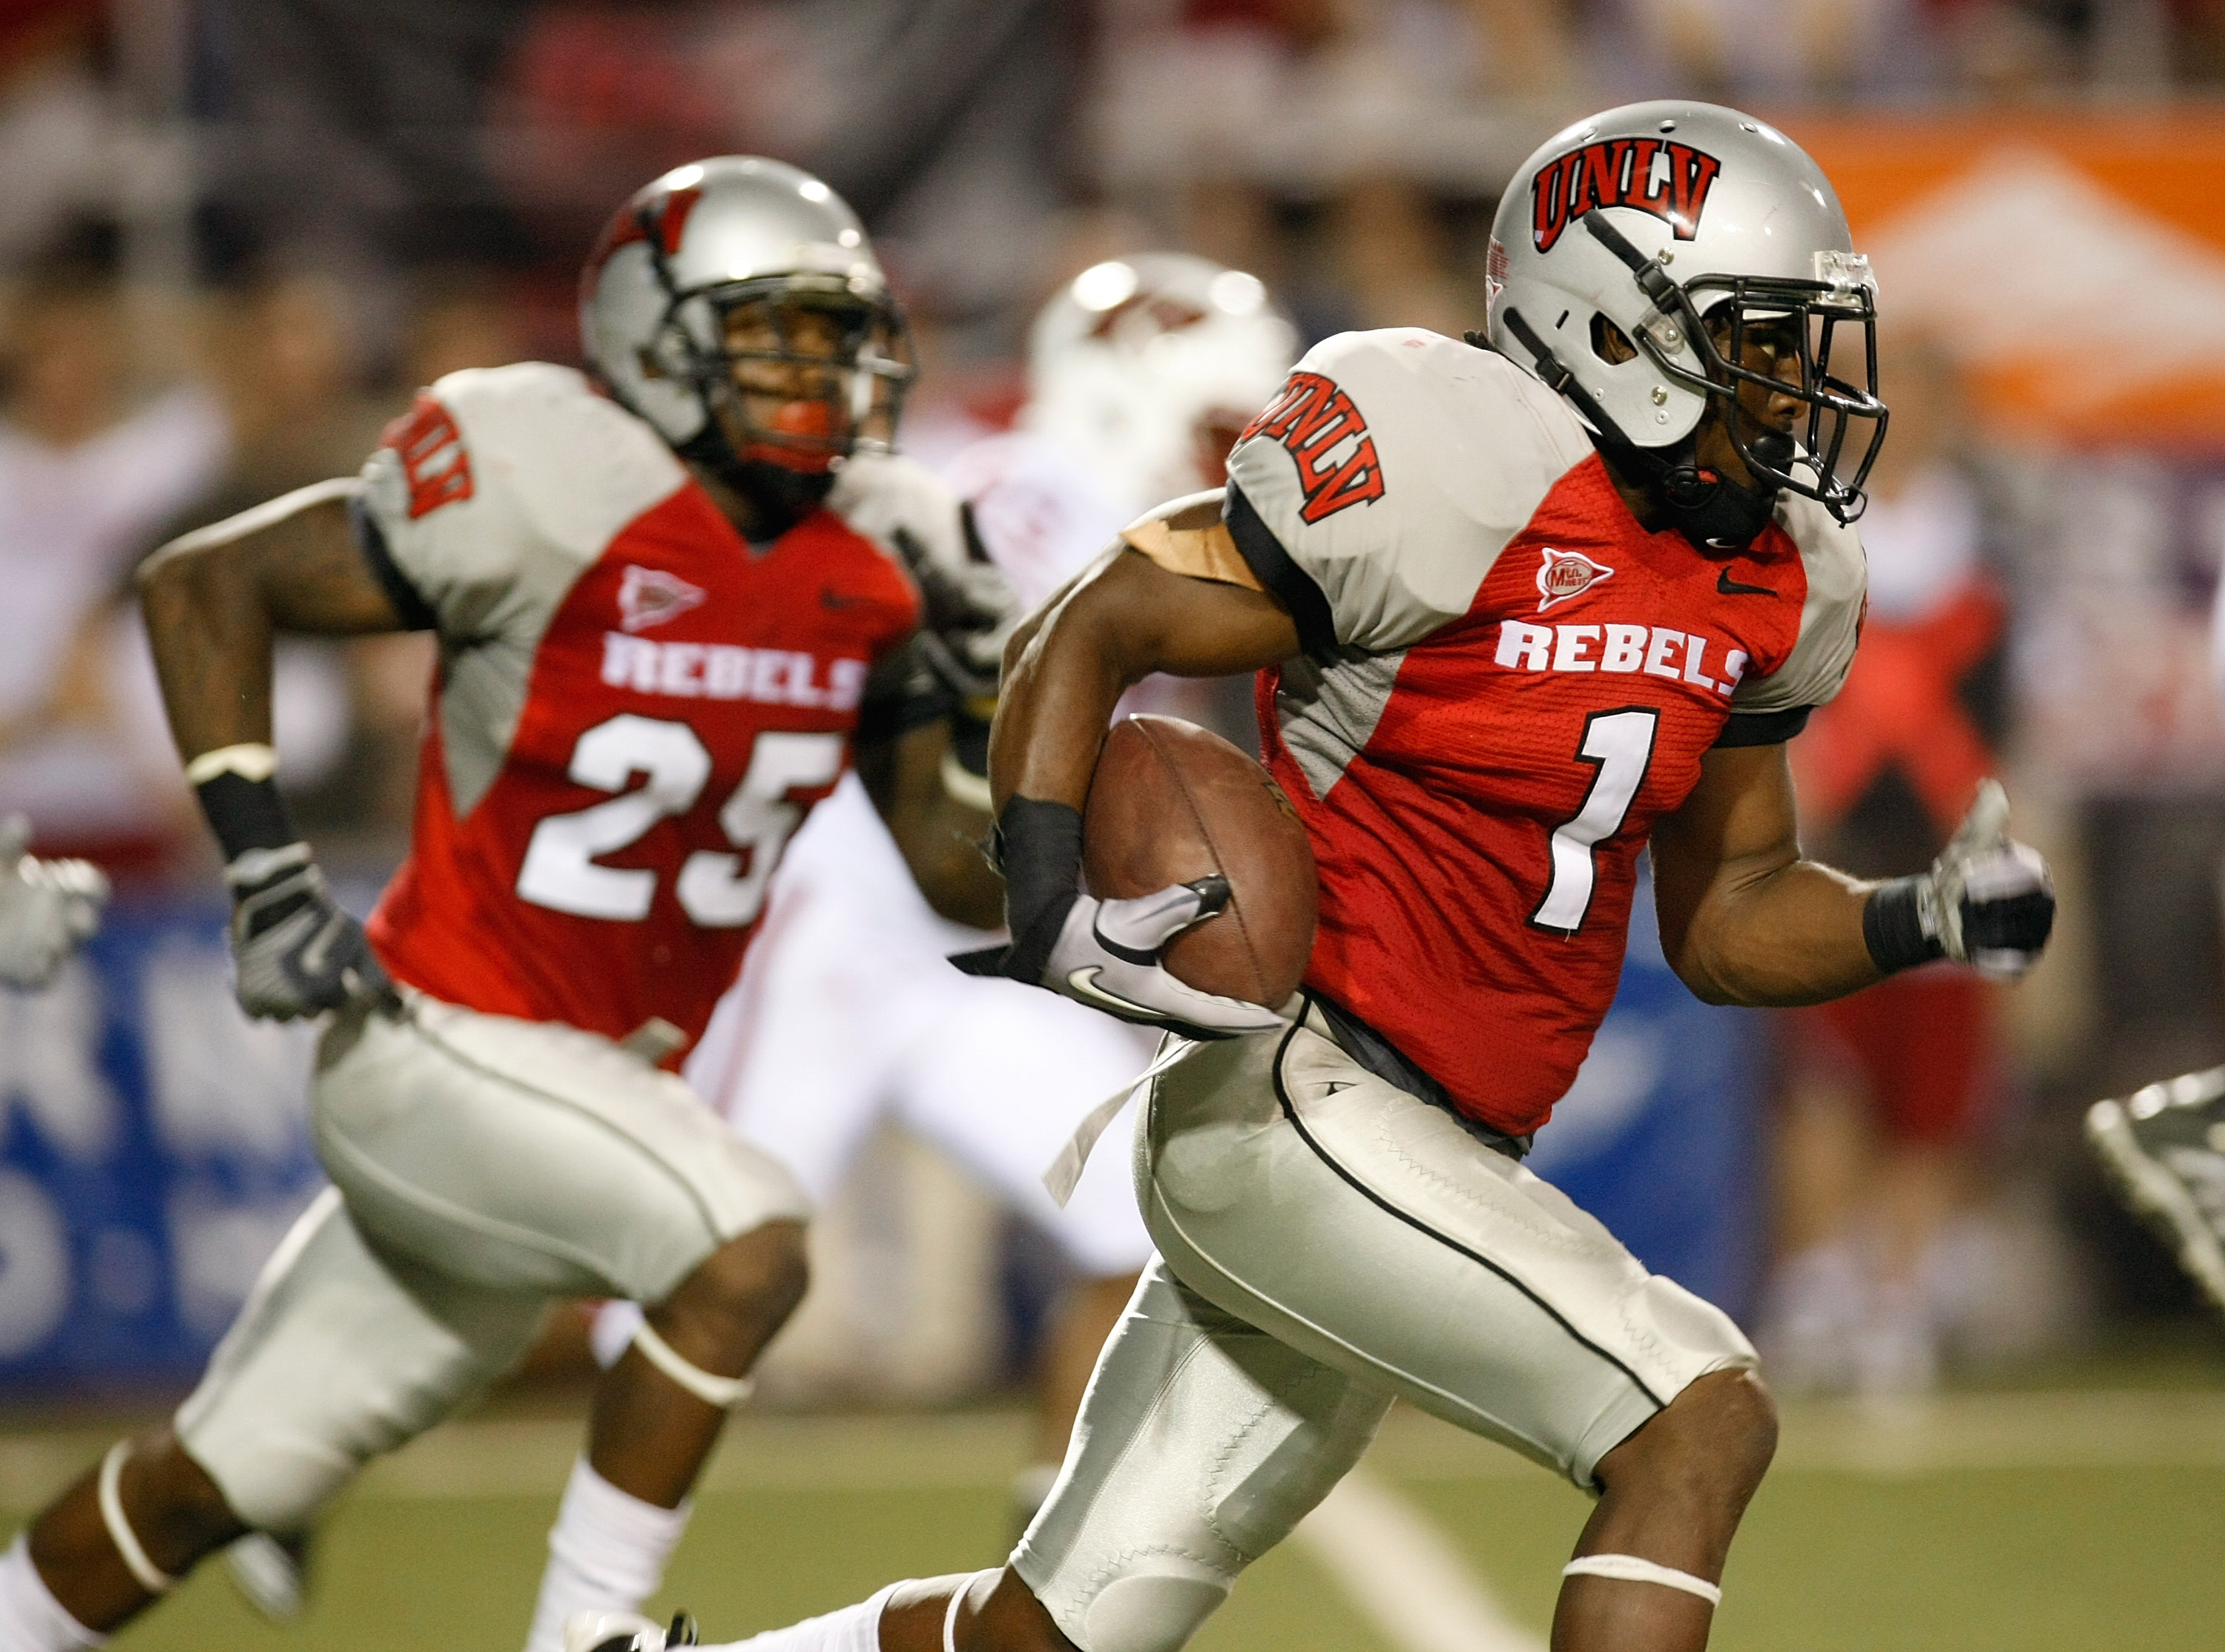 LAS VEGAS - SEPTEMBER 04:  Will Chandler #1 of the UNLV Rebels runs for yardage after recovering a fumble during the second quarter of their game against the Wisconsin Badgers at Sam Boyd Stadium September 4, 2010 in Las Vegas, Nevada. Mike Grant #25 of U